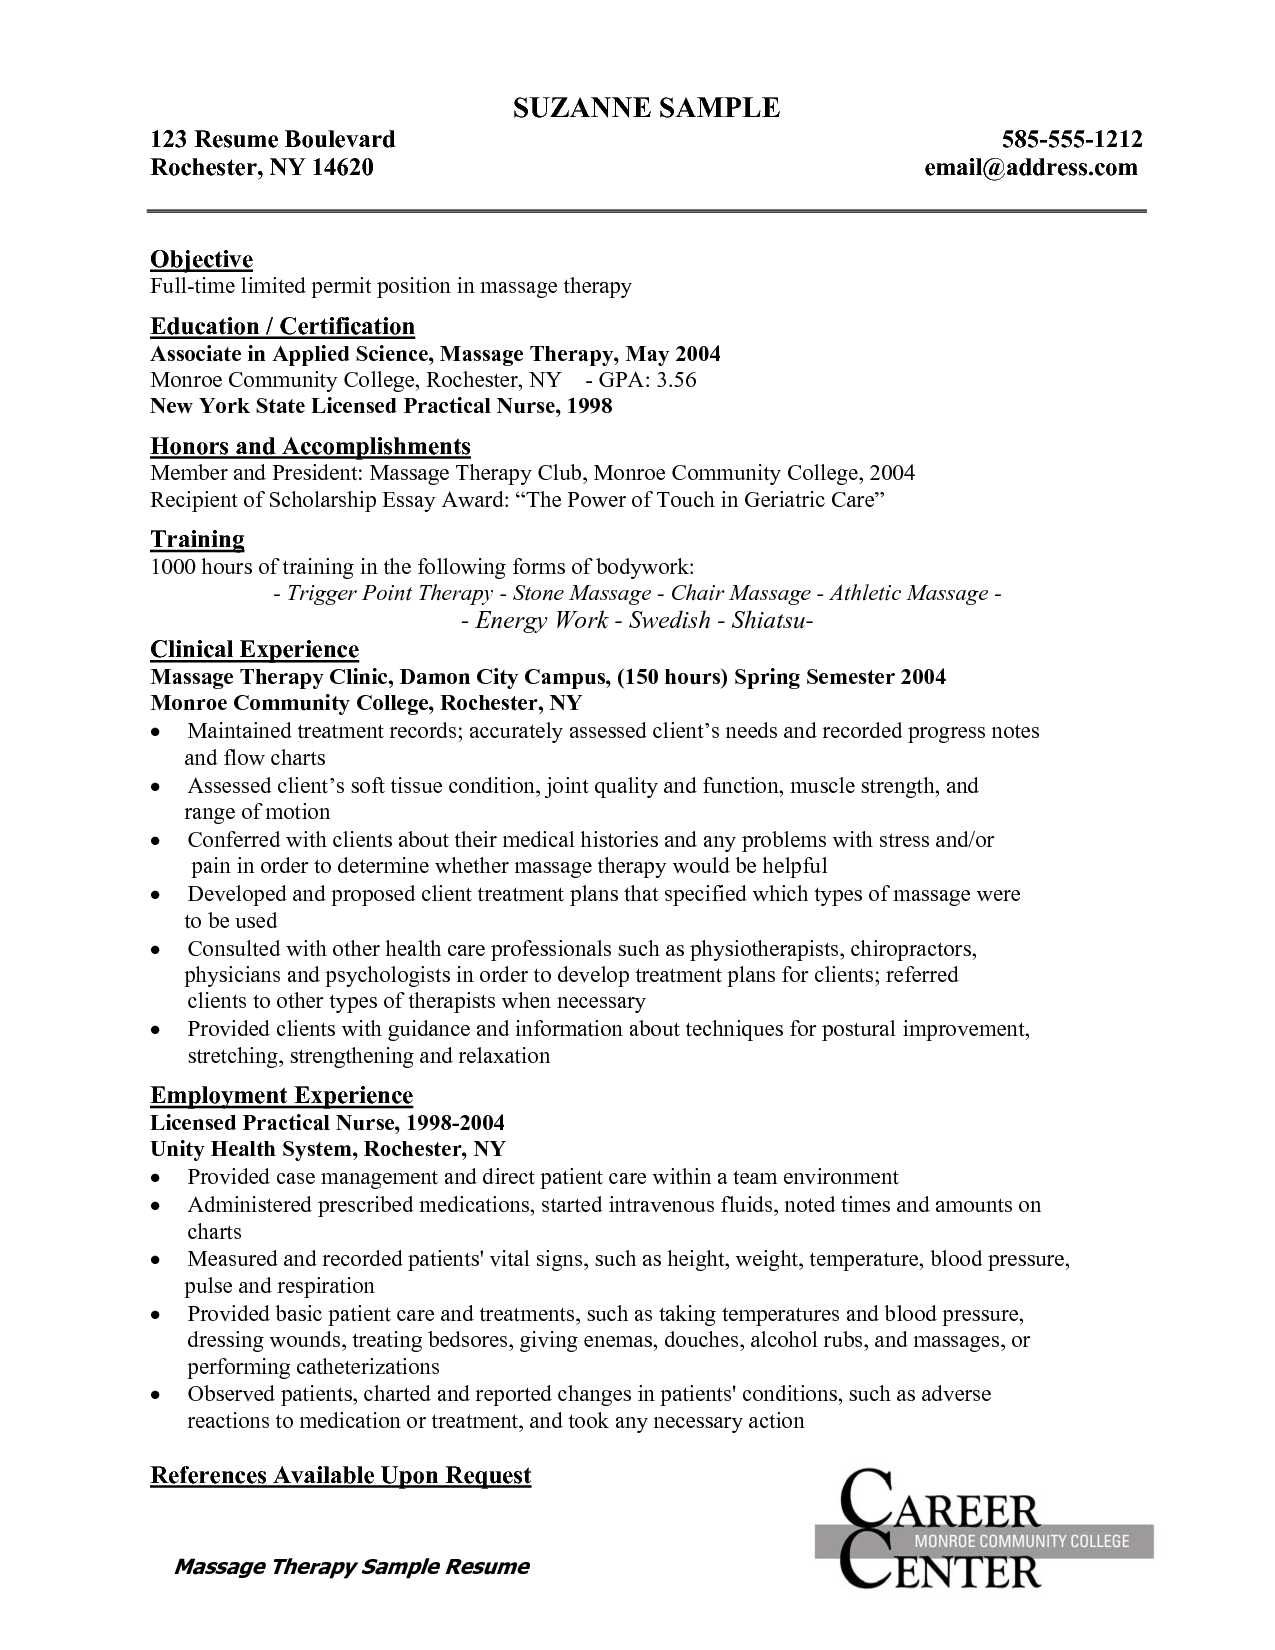 Licensed Practical Nurse Resume http//www.resumecareer